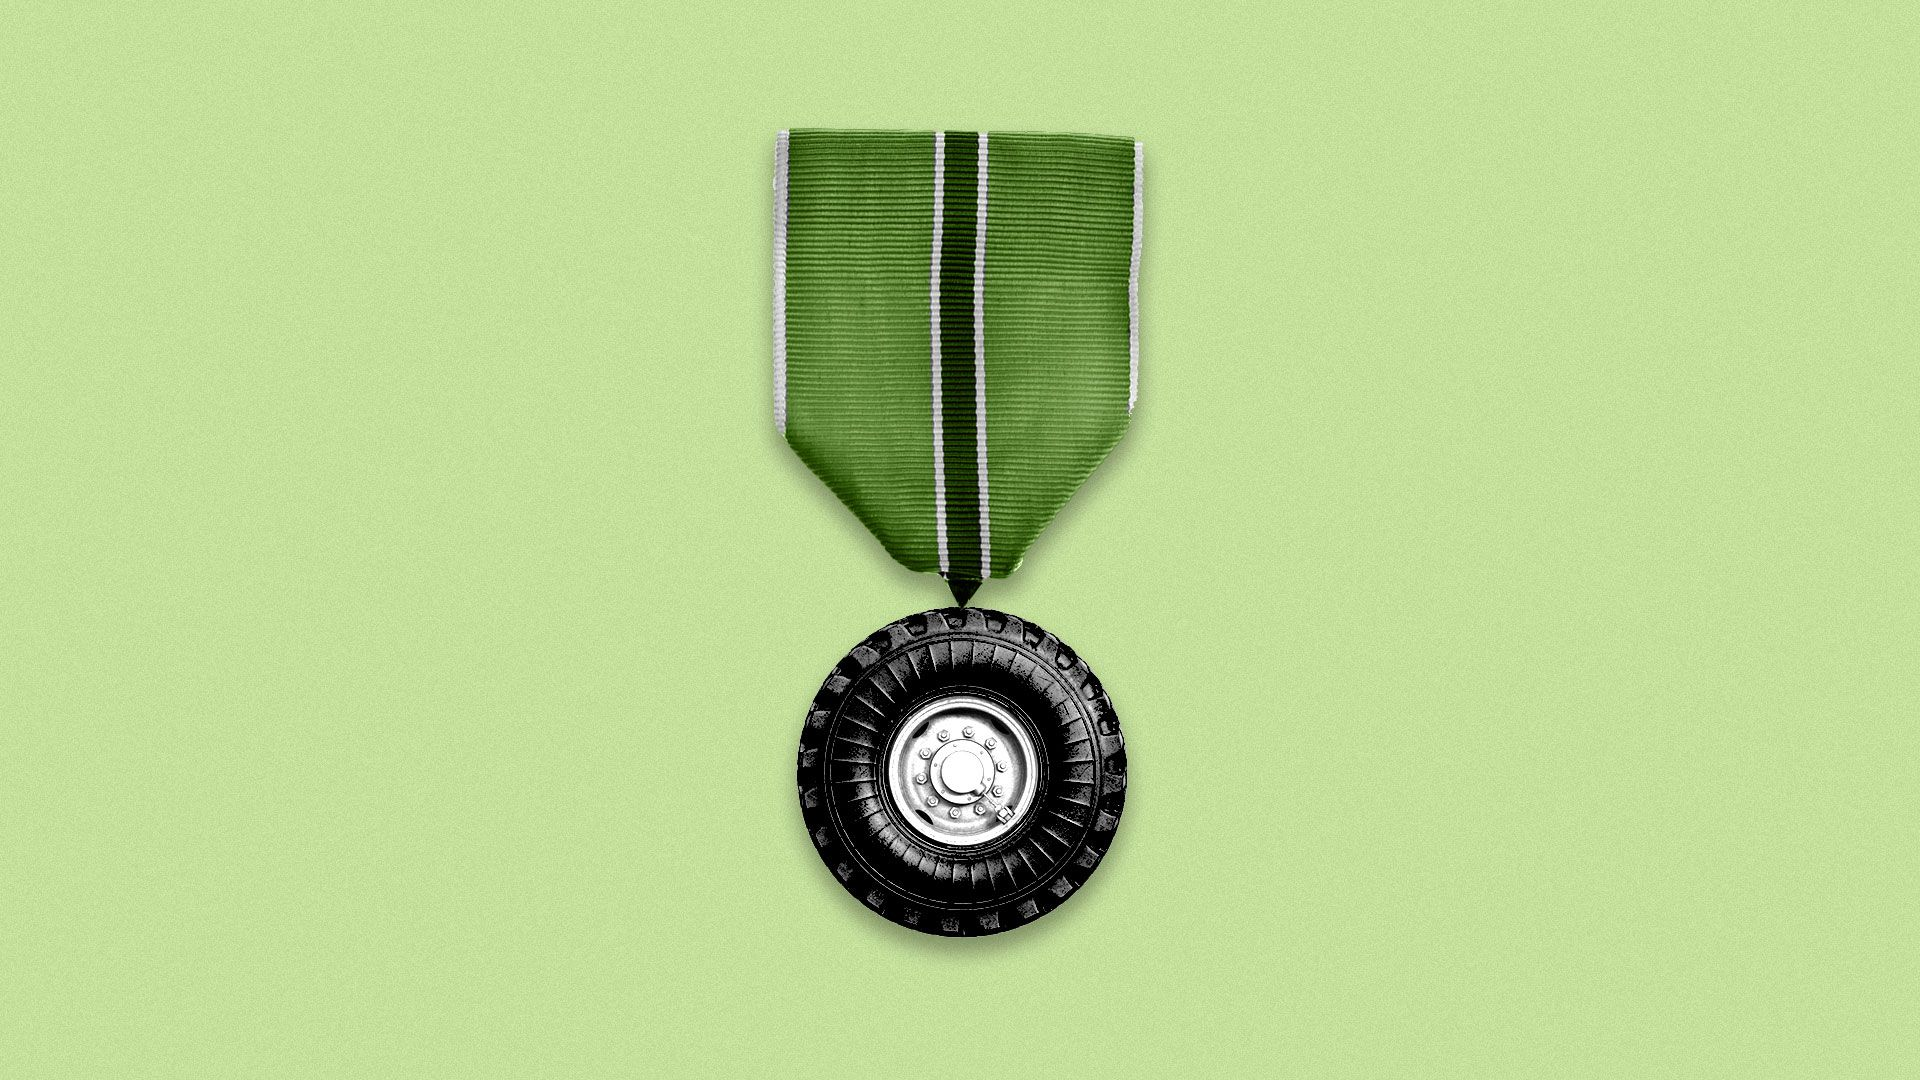 Illustration of a hanging military medal with a tire as the medal.